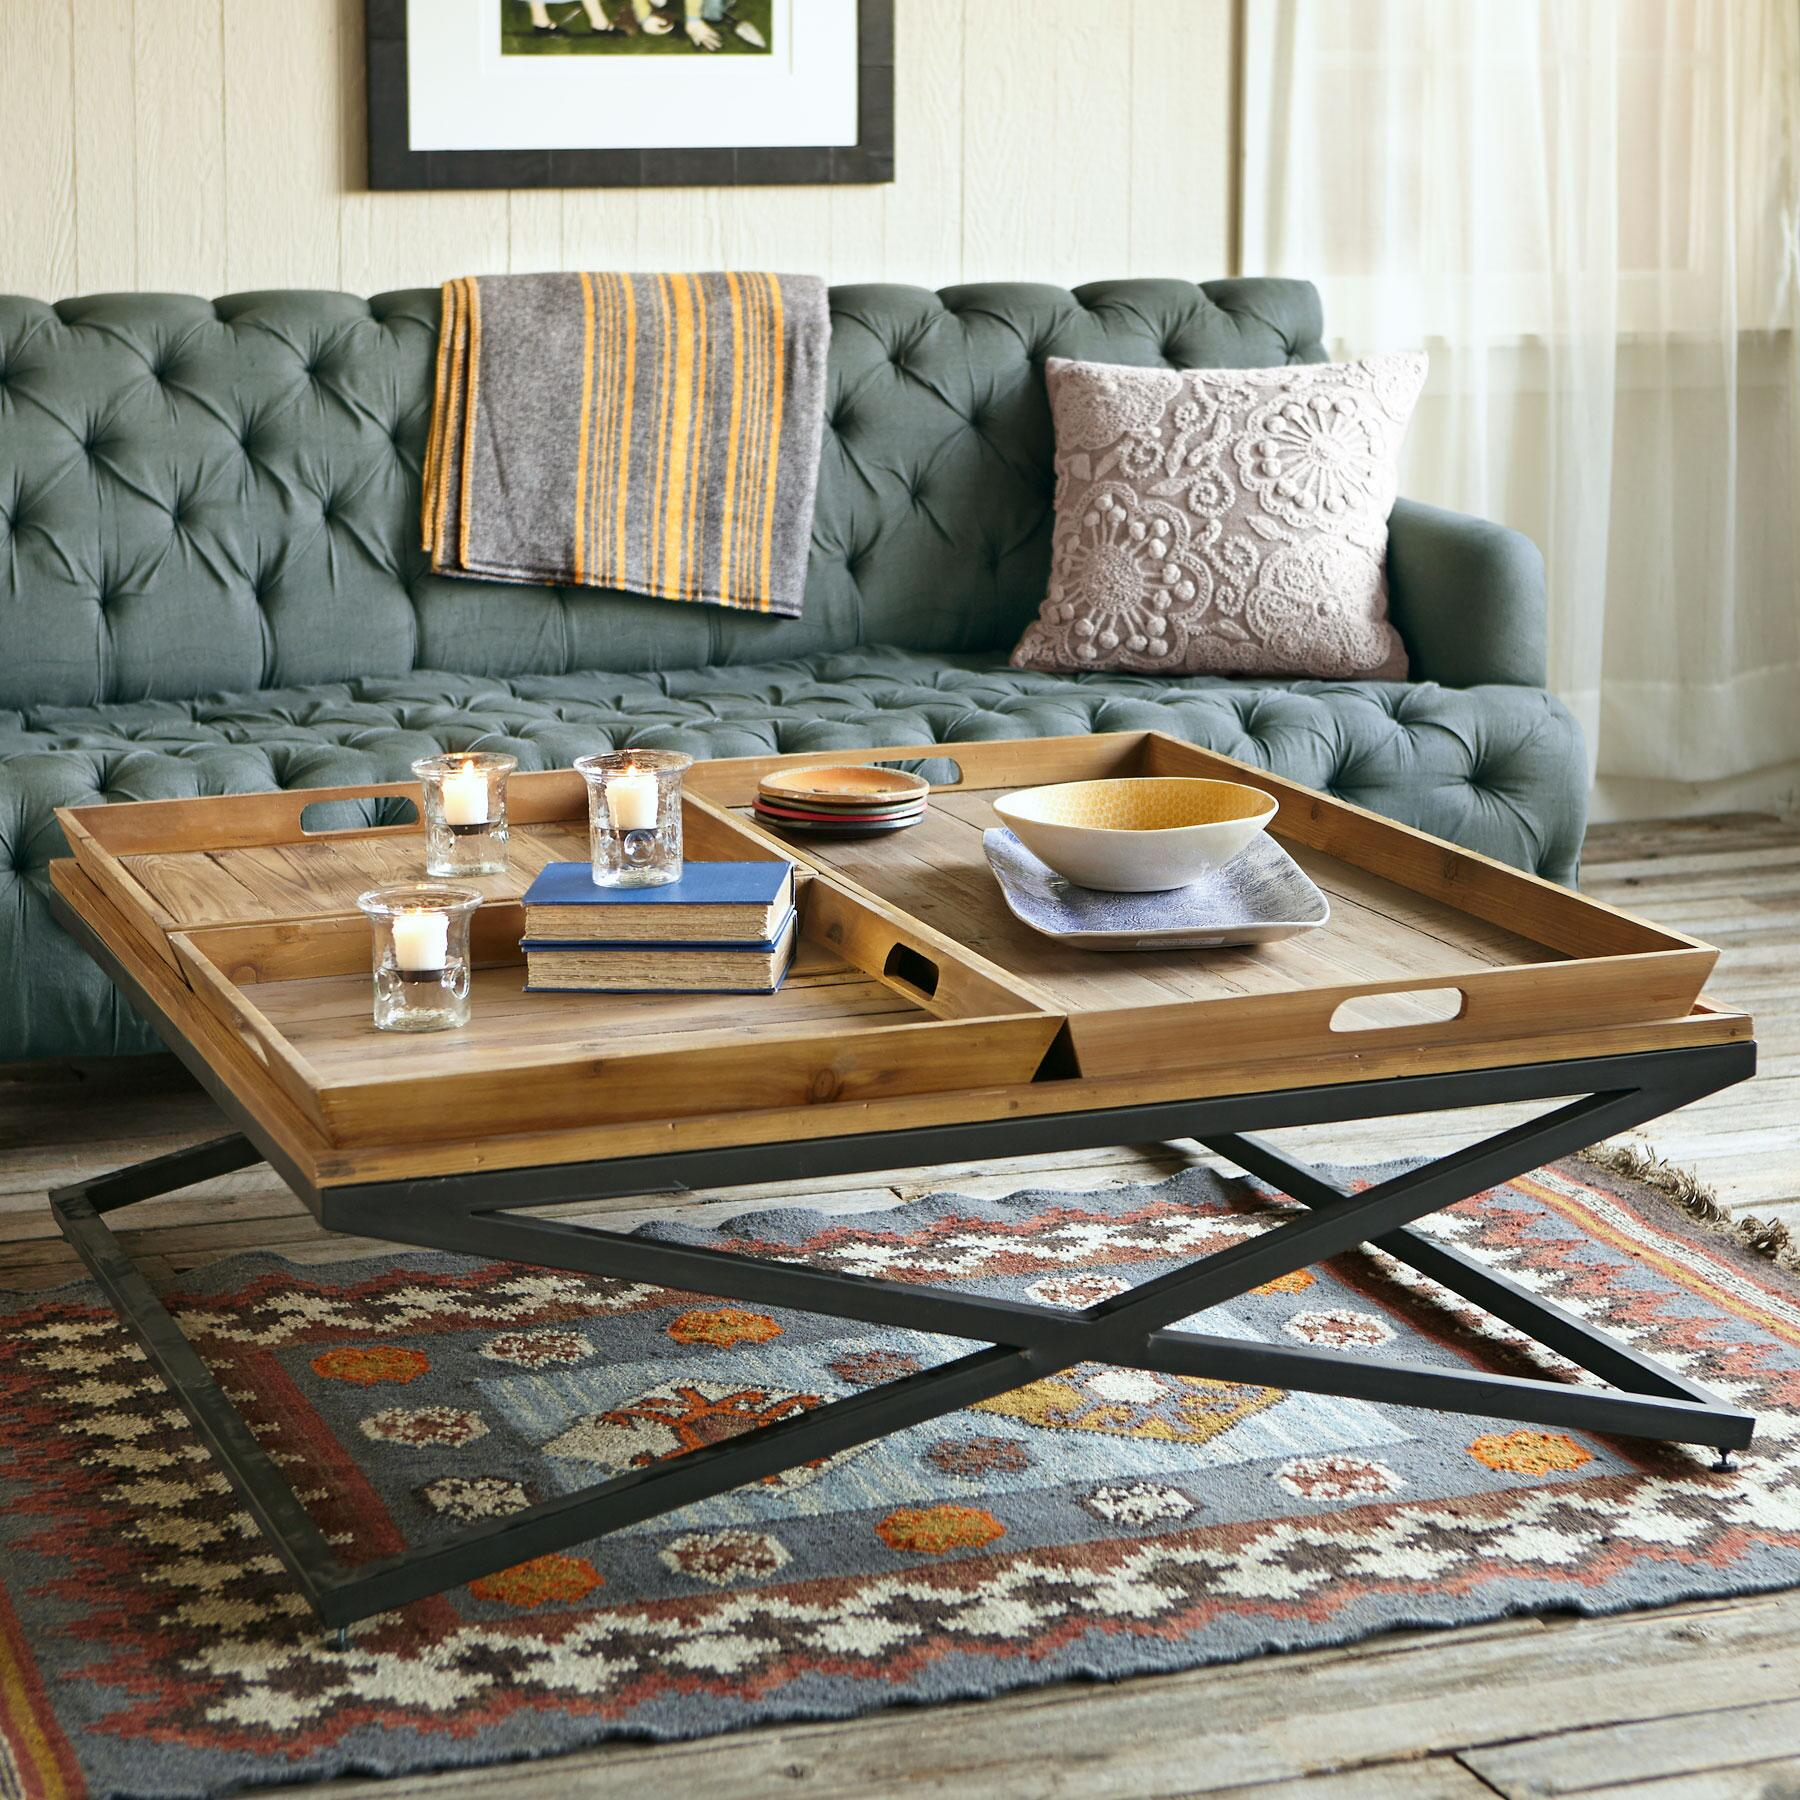 Fixer Upper Shotgun House Loft Coffee Table